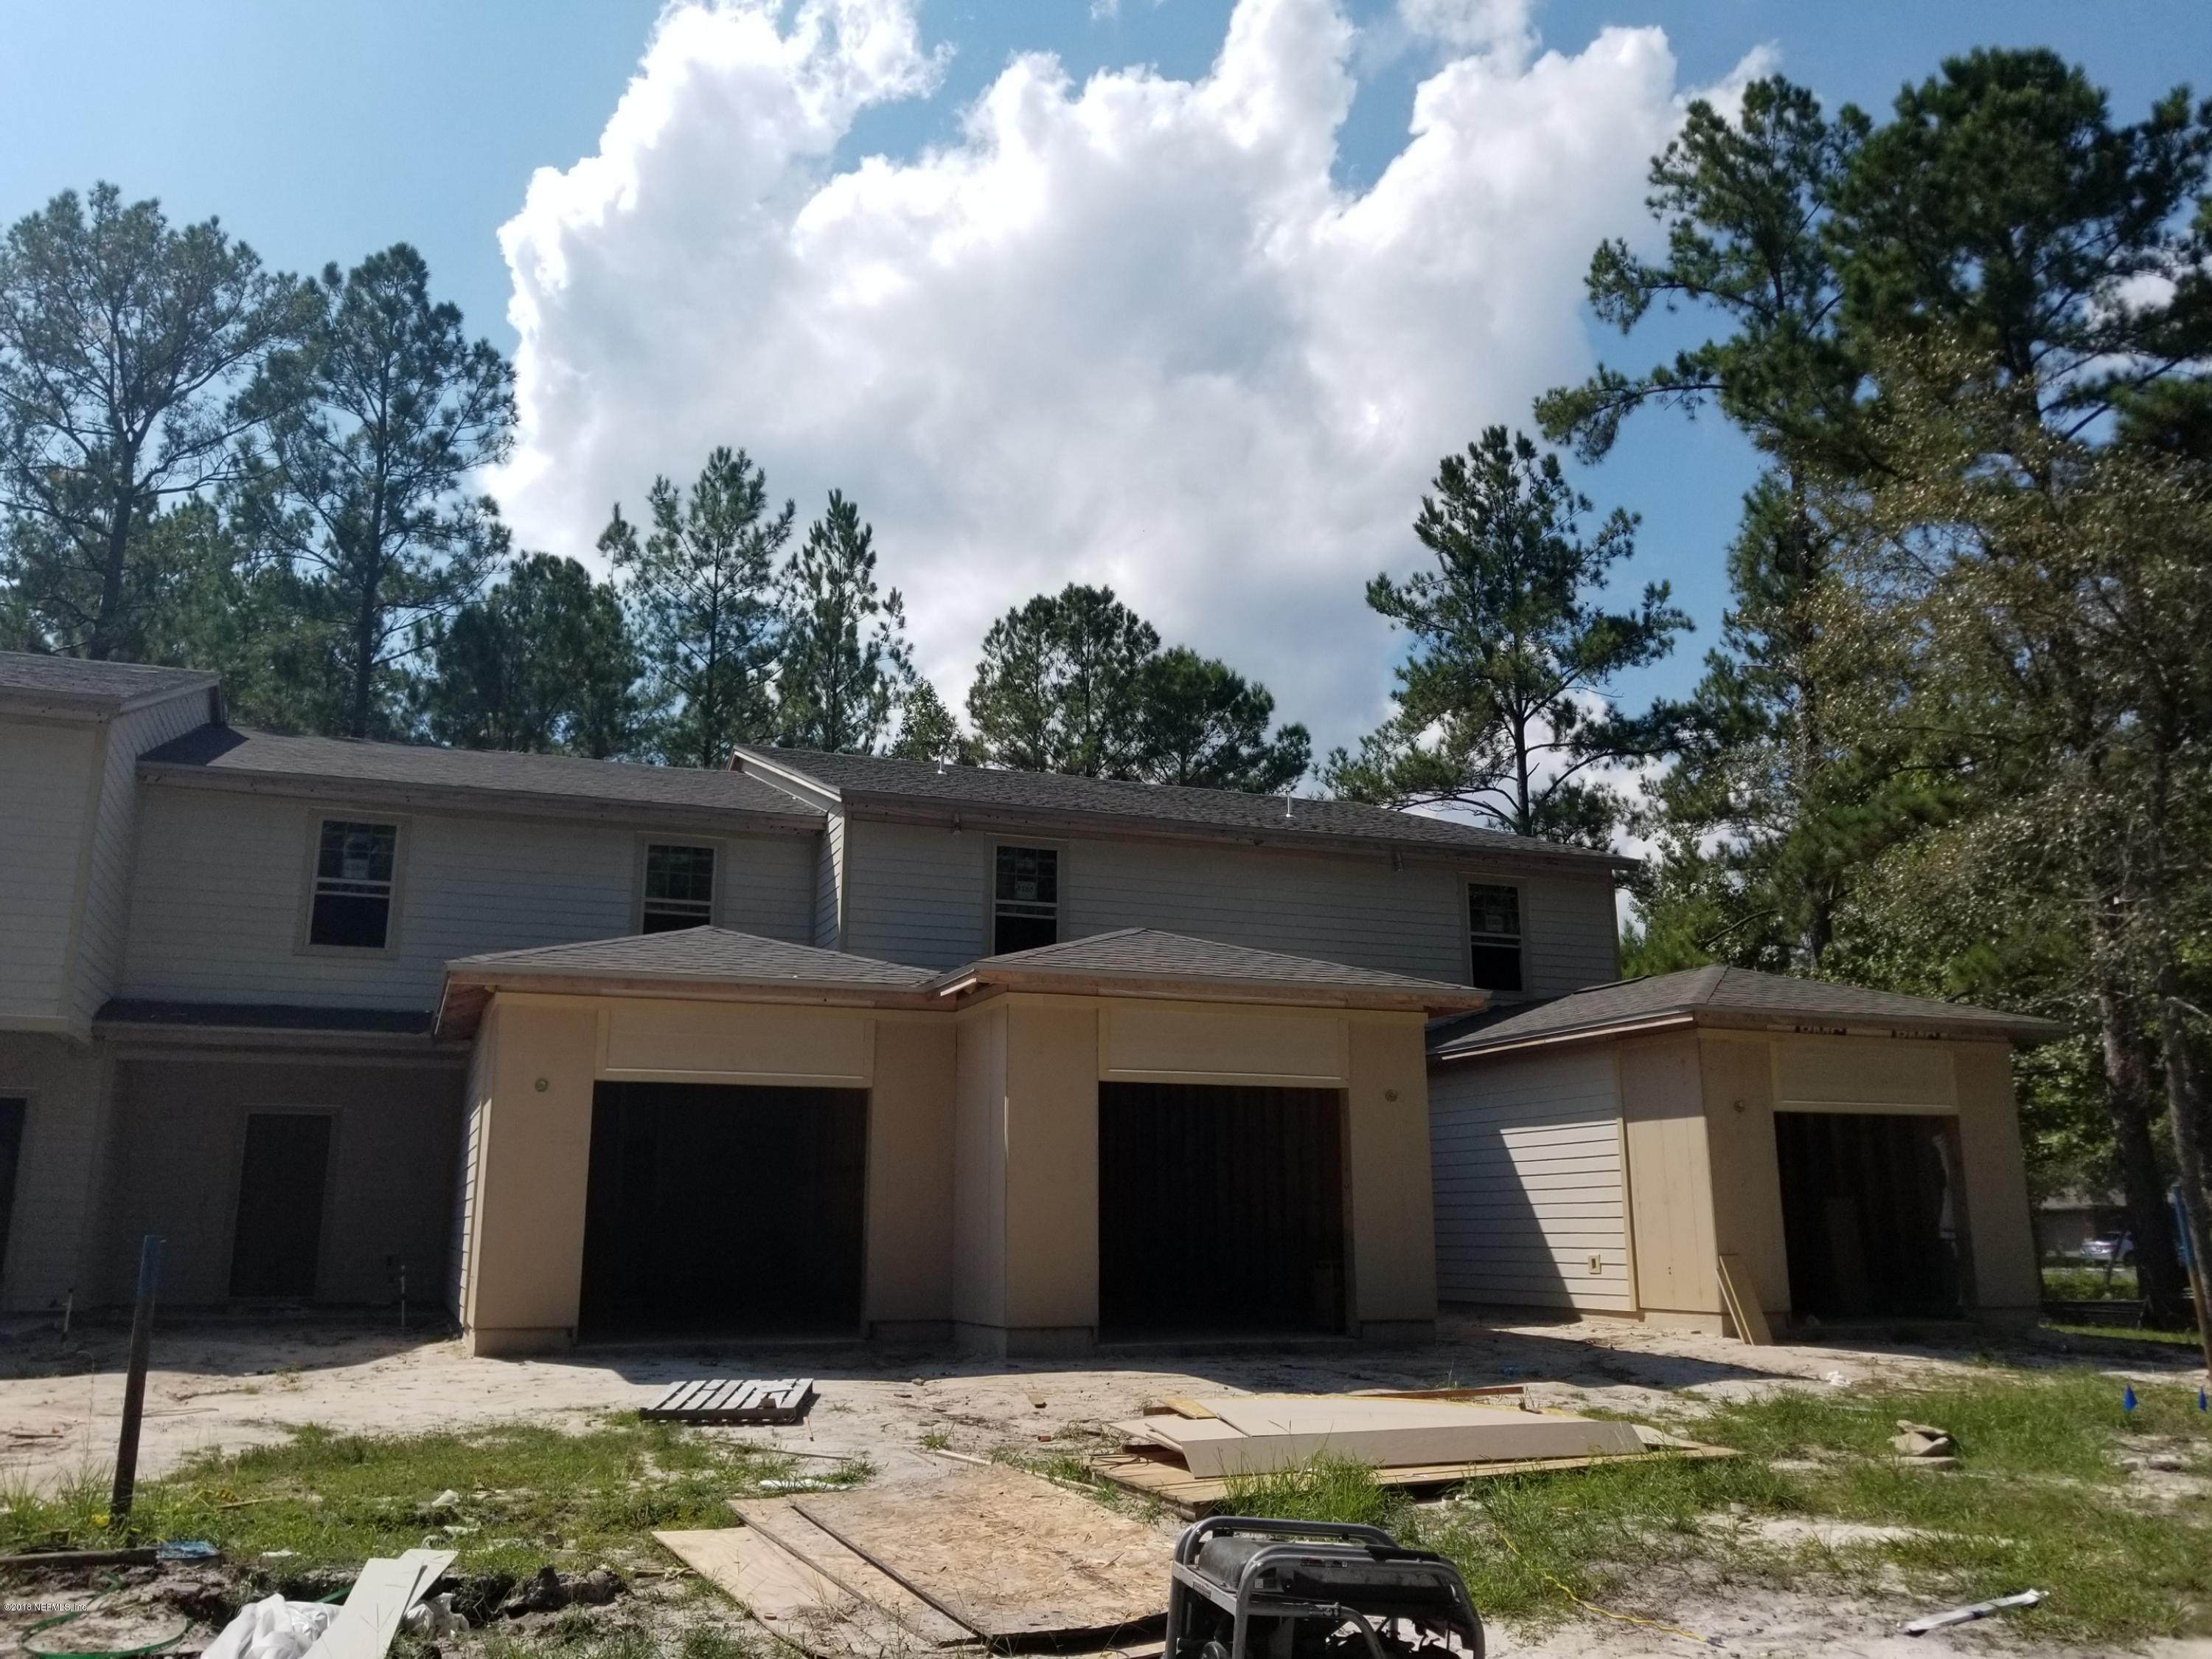 4188 QUIET CREEK, MIDDLEBURG, FLORIDA 32068, 3 Bedrooms Bedrooms, ,2 BathroomsBathrooms,Residential - condos/townhomes,For sale,QUIET CREEK,845495